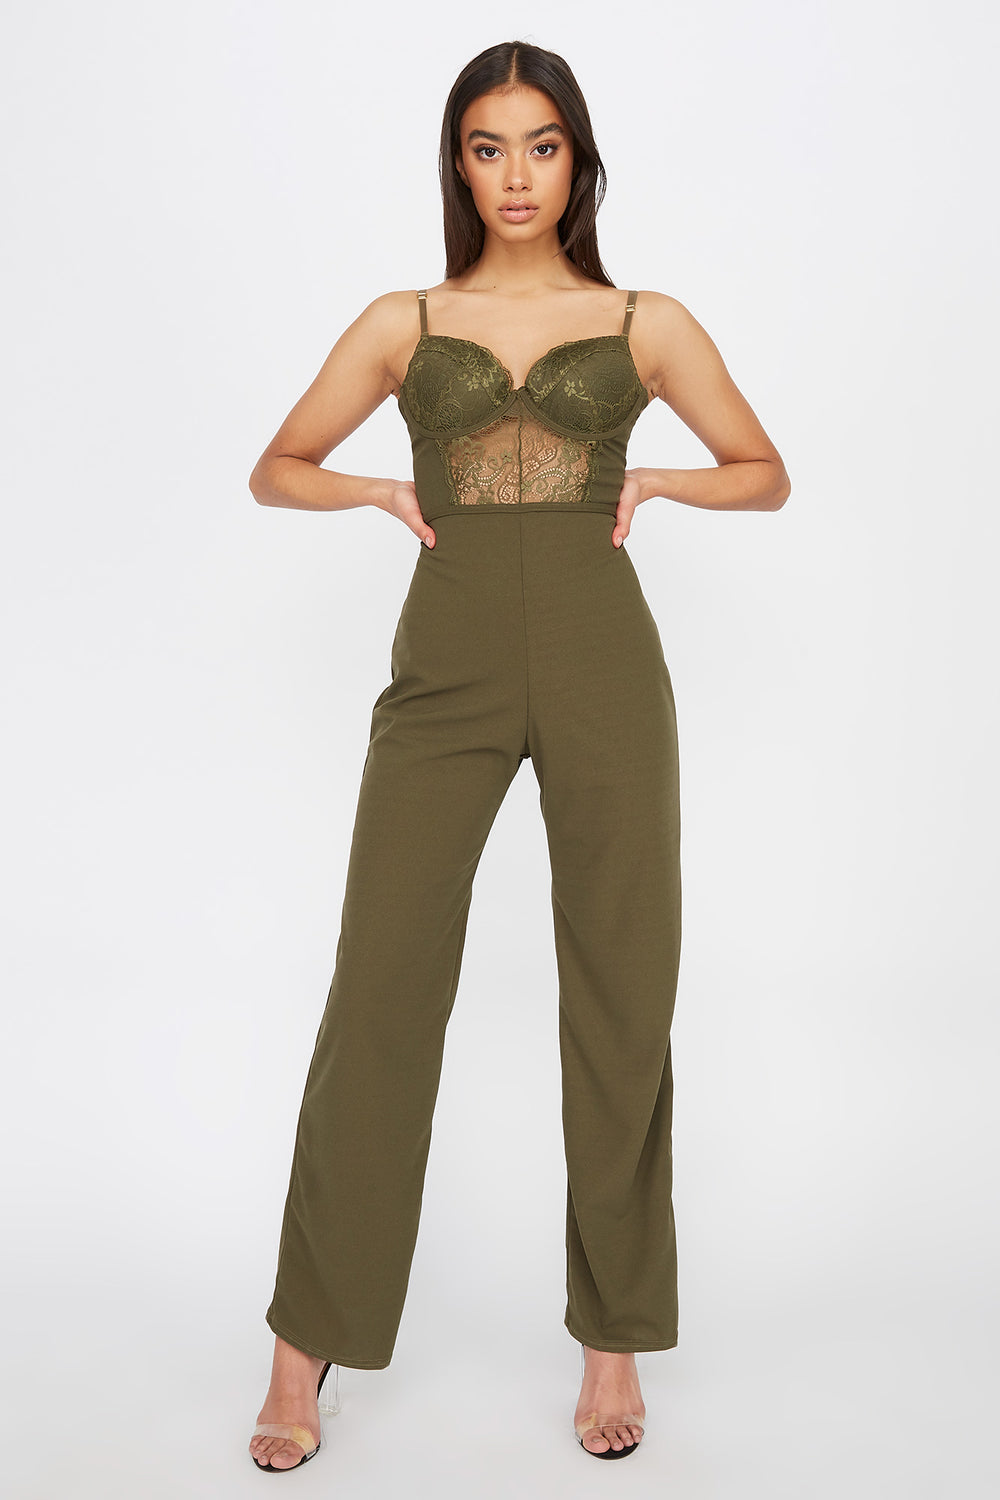 Bustier Lace Jumpsuit Dark Green